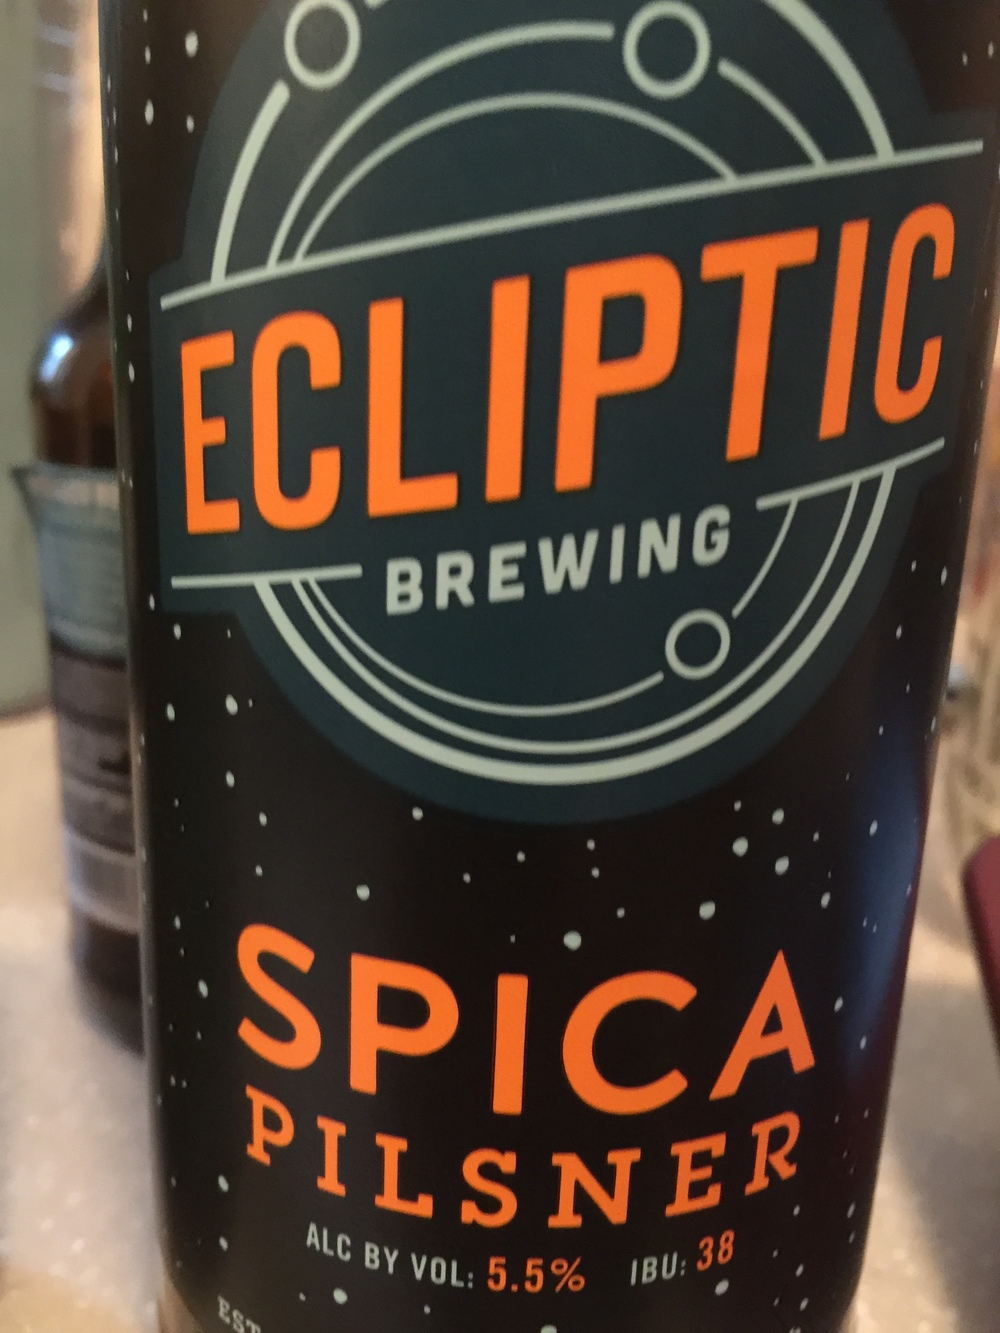 Ecliptic Spica Pilsner   A good beer for just being out with friends, doing activities. If you want to drink and still be functional, this beer is for you. Its a middle of the day beer. There is a surprise after taste to this beer that you don't get from other Pilsner beers  Rating: 6.75/10